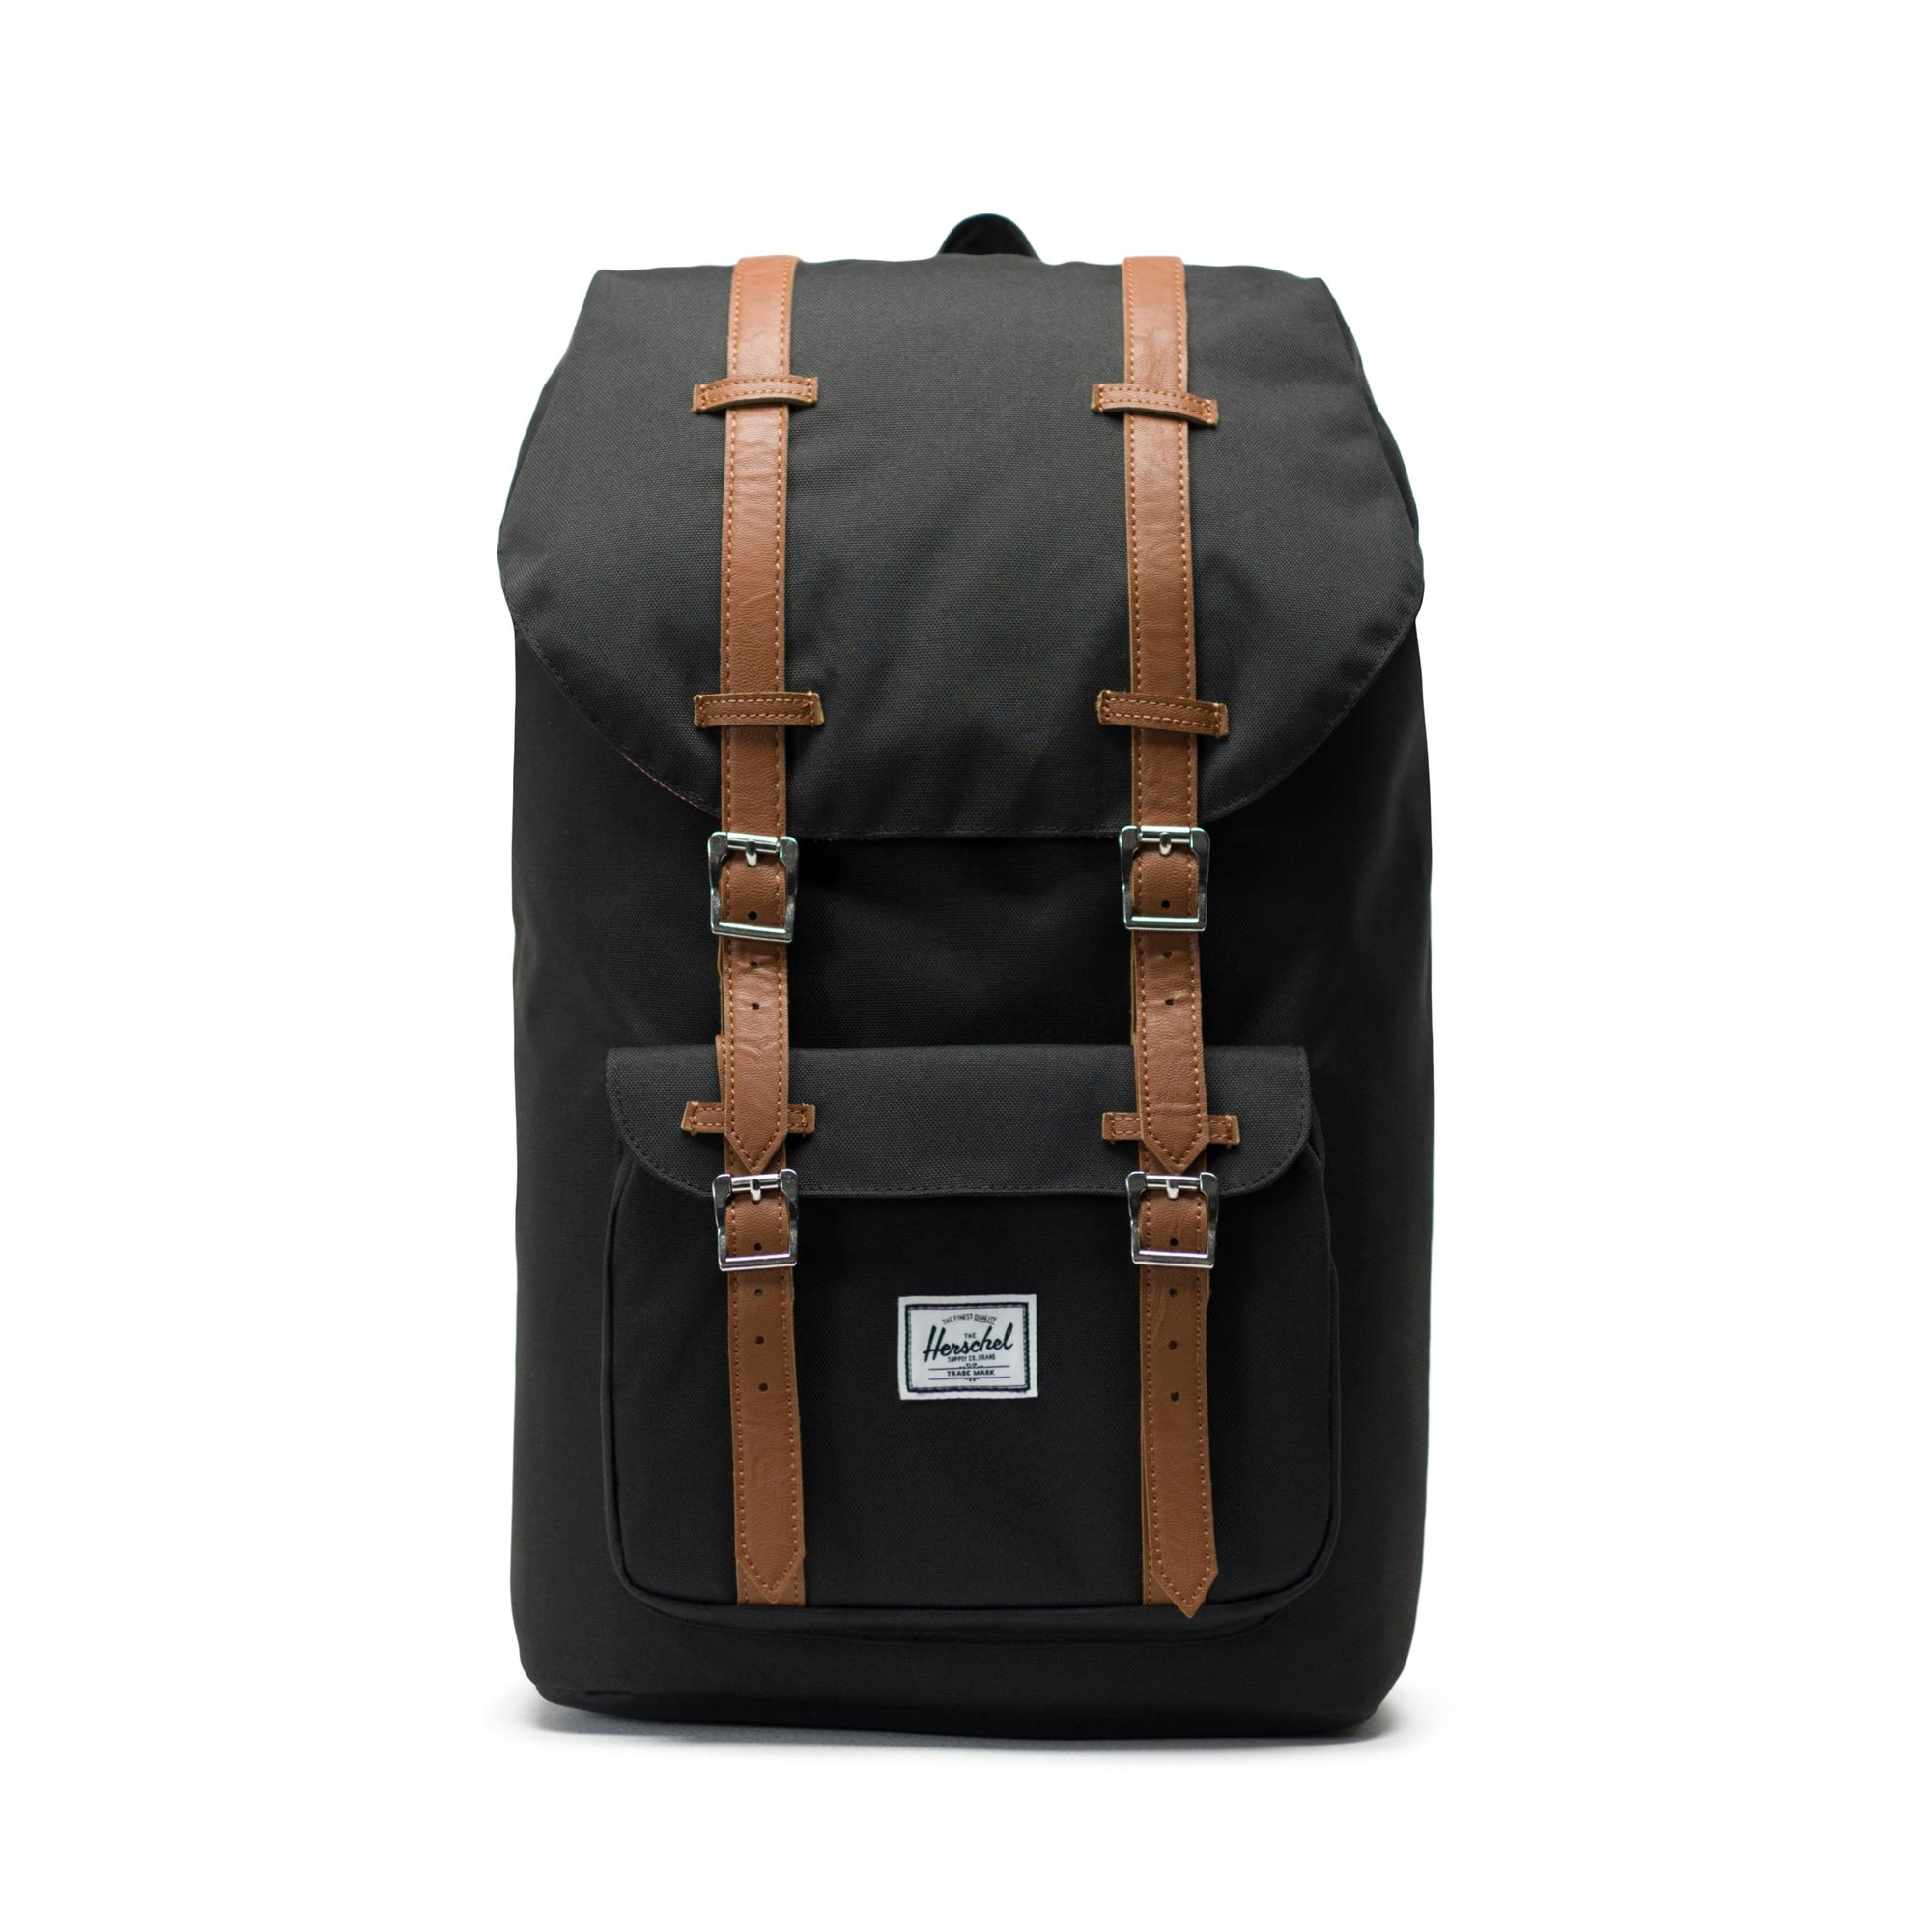 08d238e6c7ca Herschel Little America Backpack | Herschel Supply Company